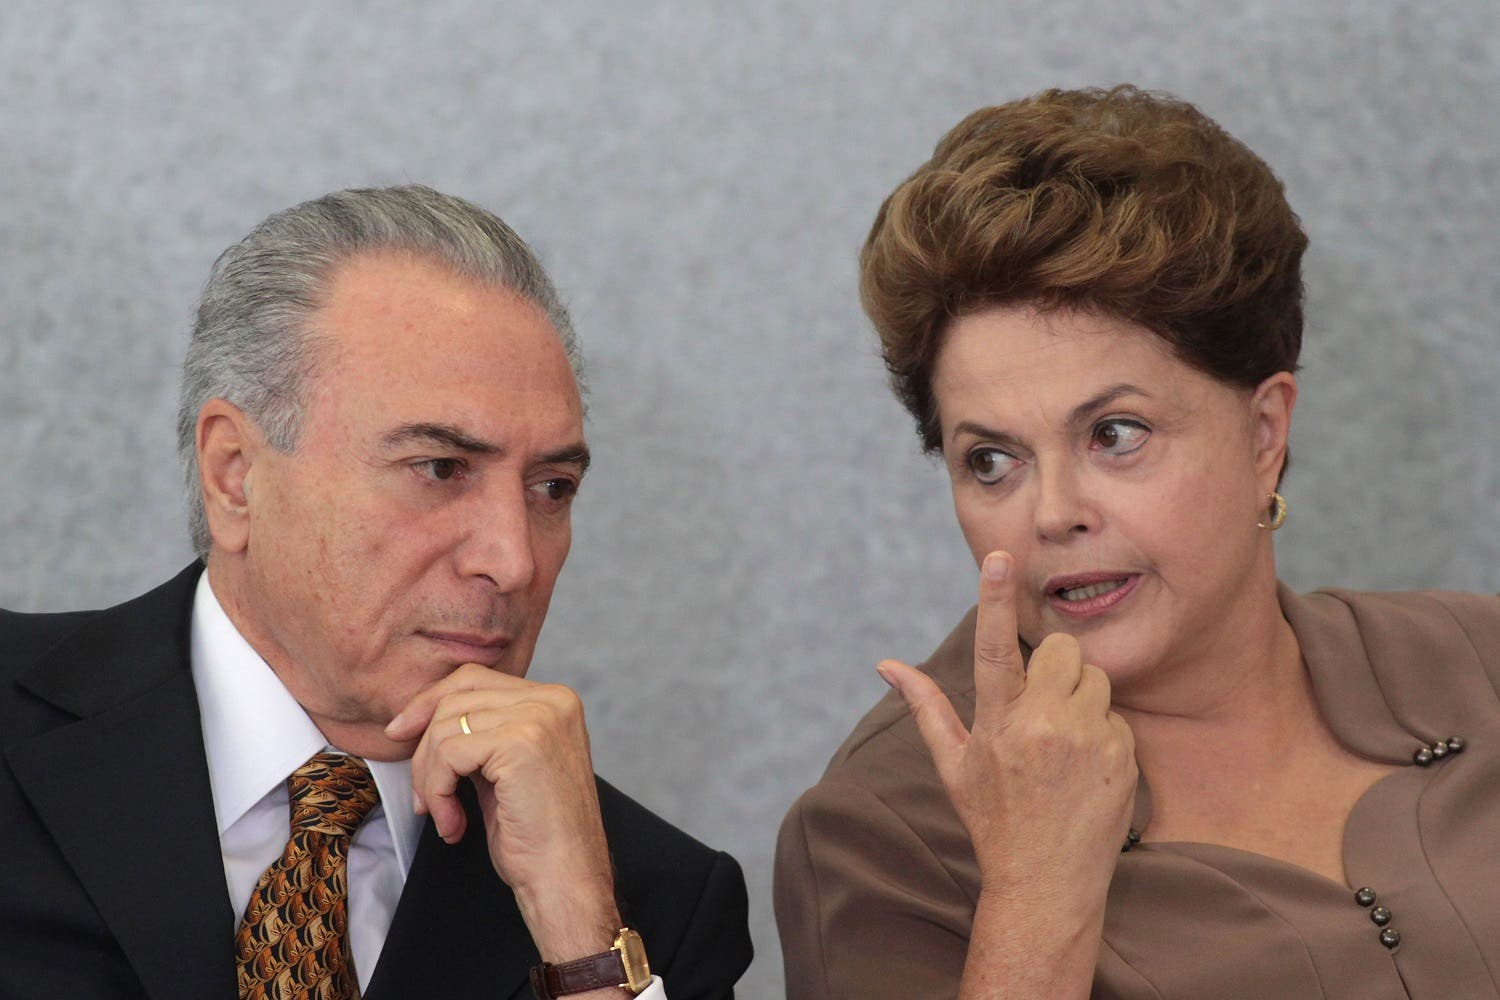 Brazil's President Dilma Rousseff, right, talks with her Vice President Michel Temer during a ceremony at Planalto Palace in Brasilia, Brazil. (AP)